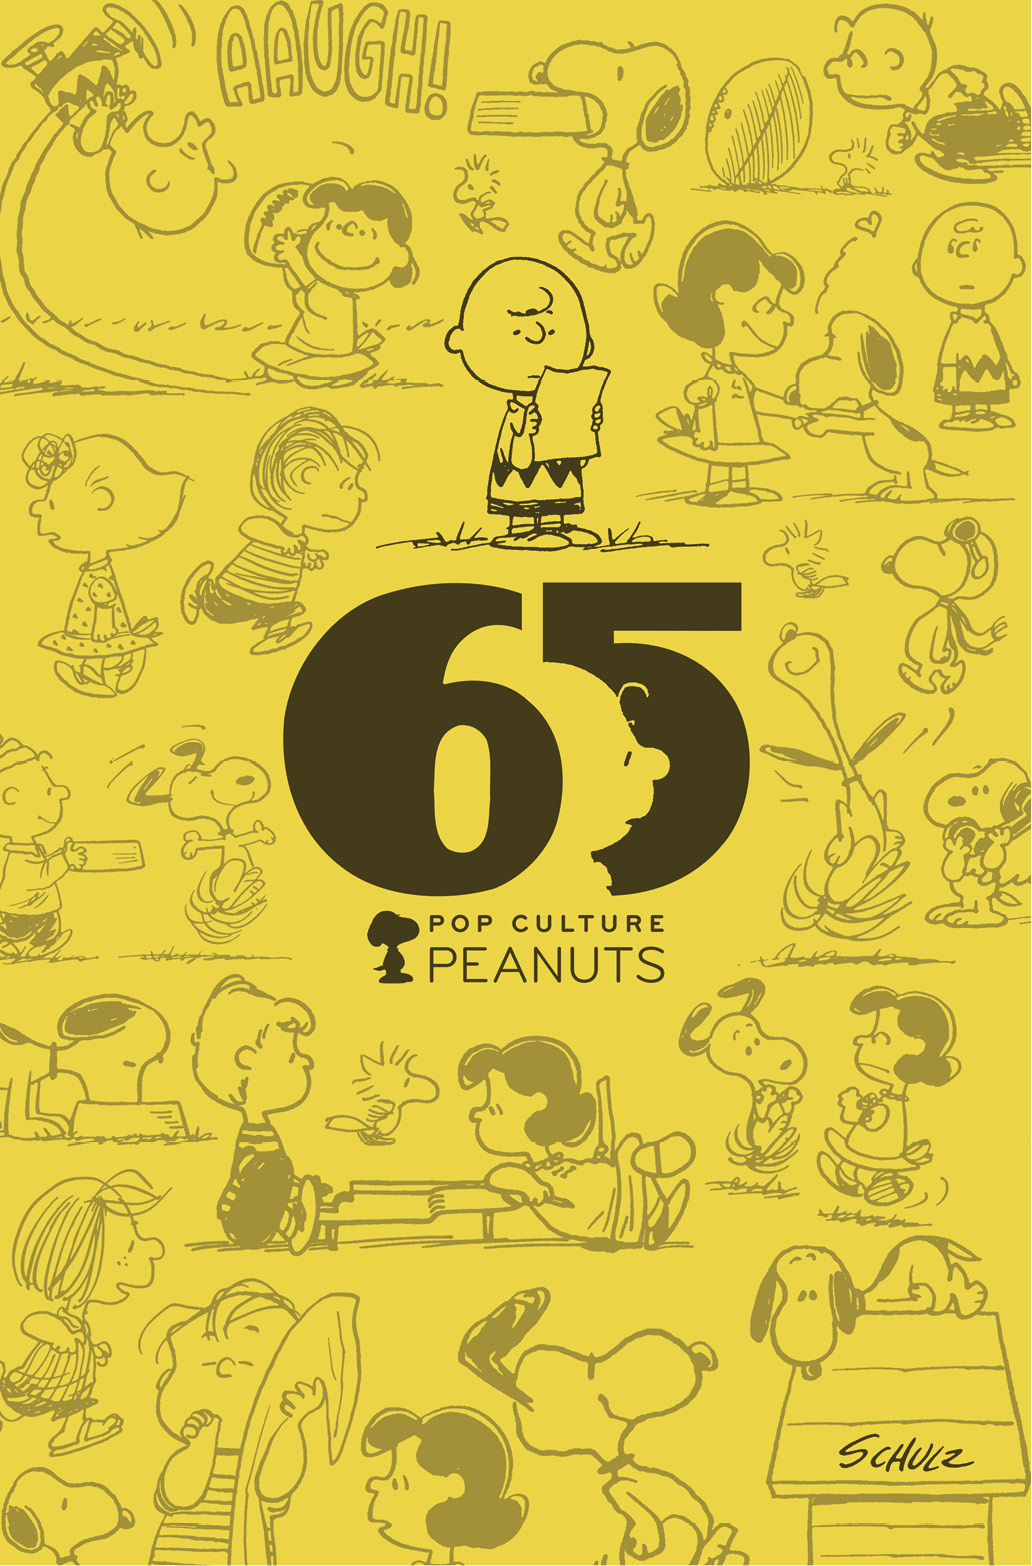 Peanuts #25 Incentive Cover